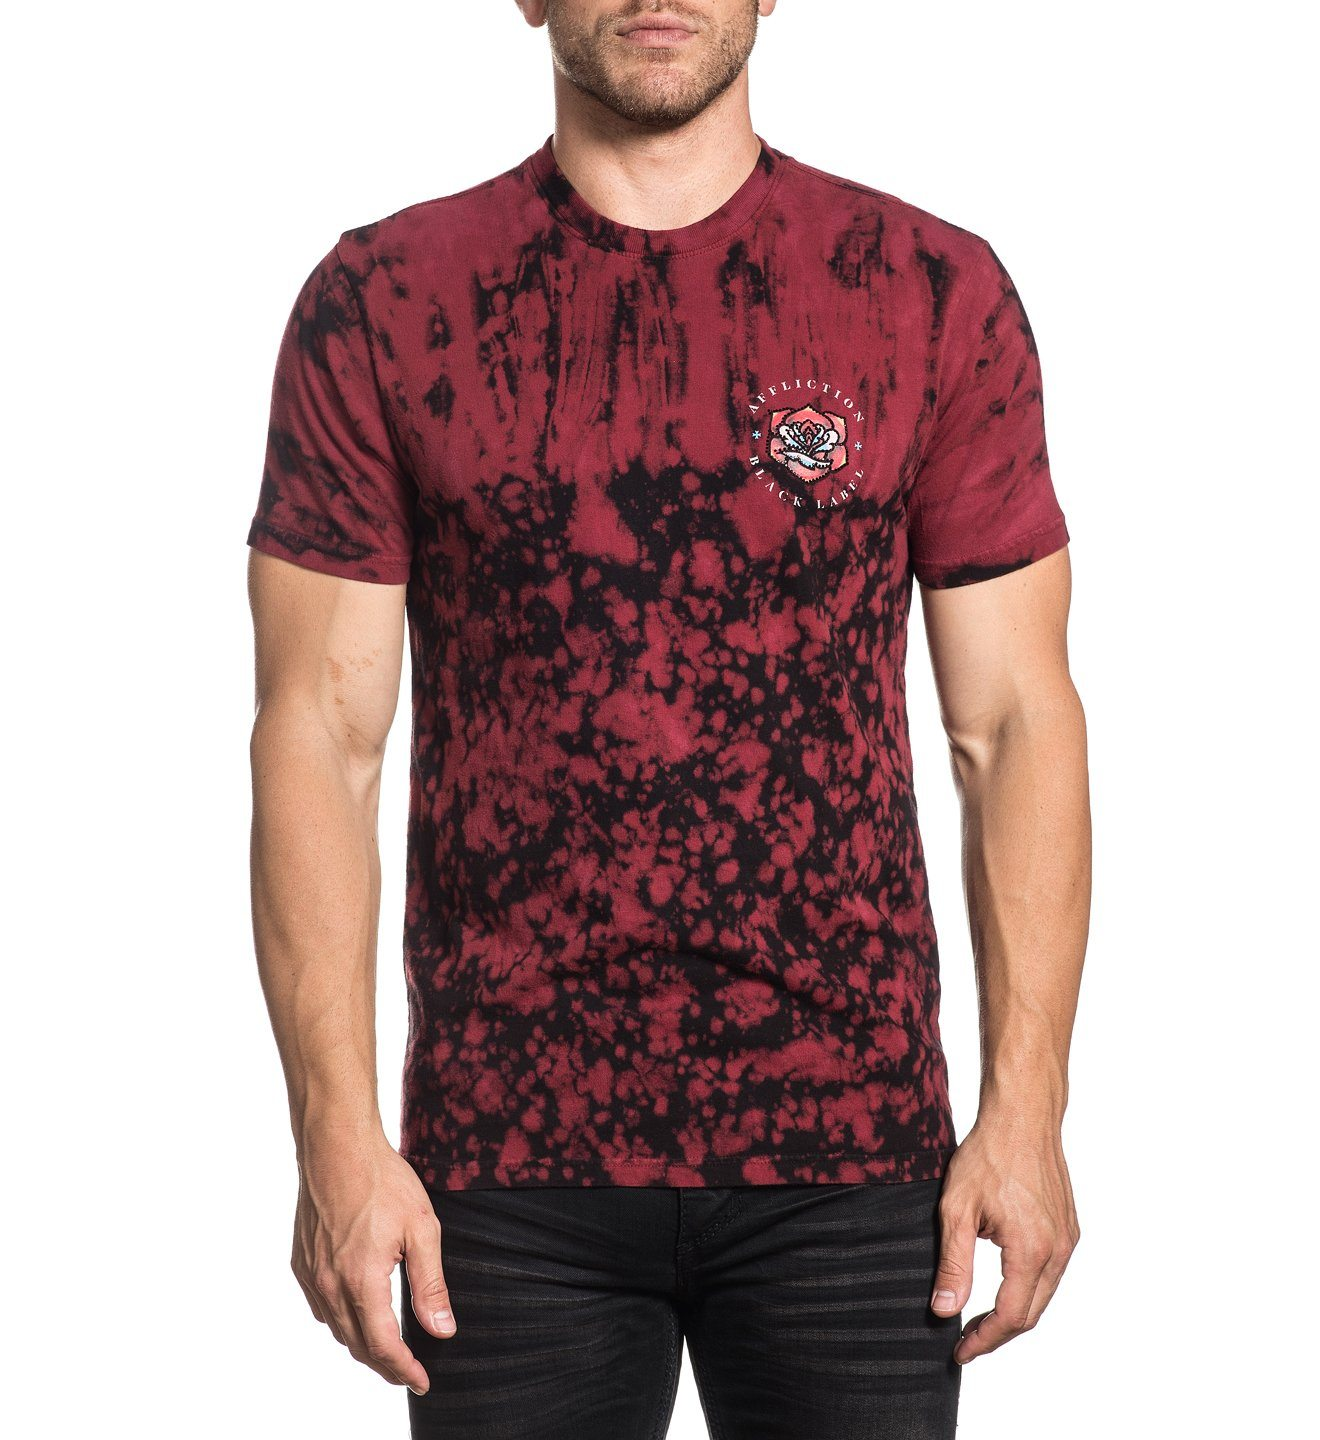 Screaming Dagger - Mens Short Sleeve Tees - Affliction Clothing